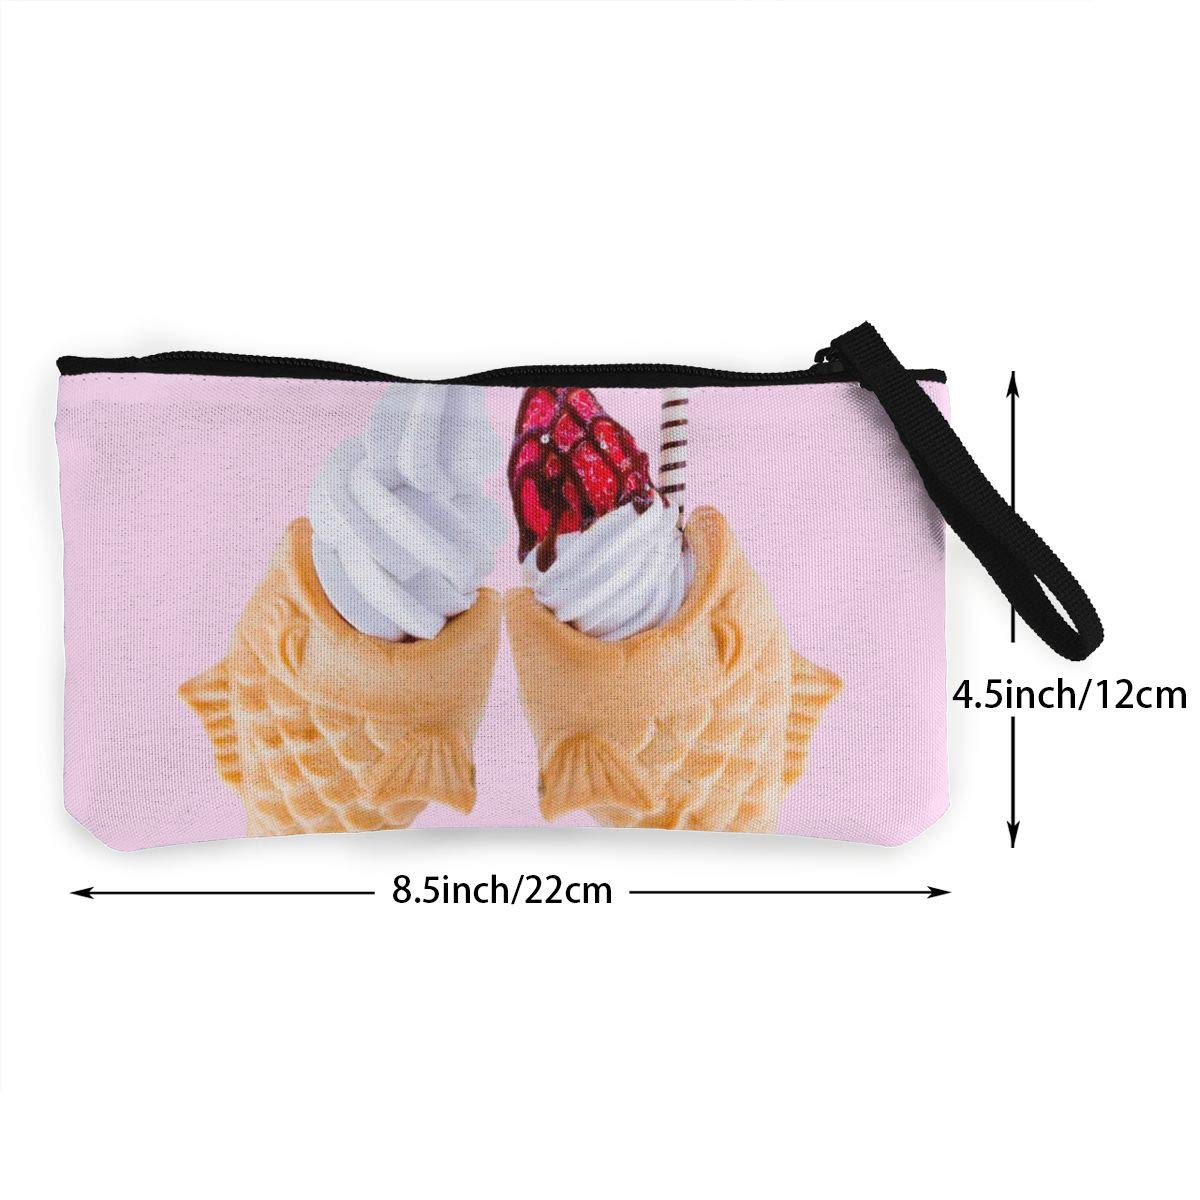 Maple Memories Valentines Day Ice Cream Portable Canvas Coin Purse Change Purse Pouch Mini Wallet Gifts For Women Girls